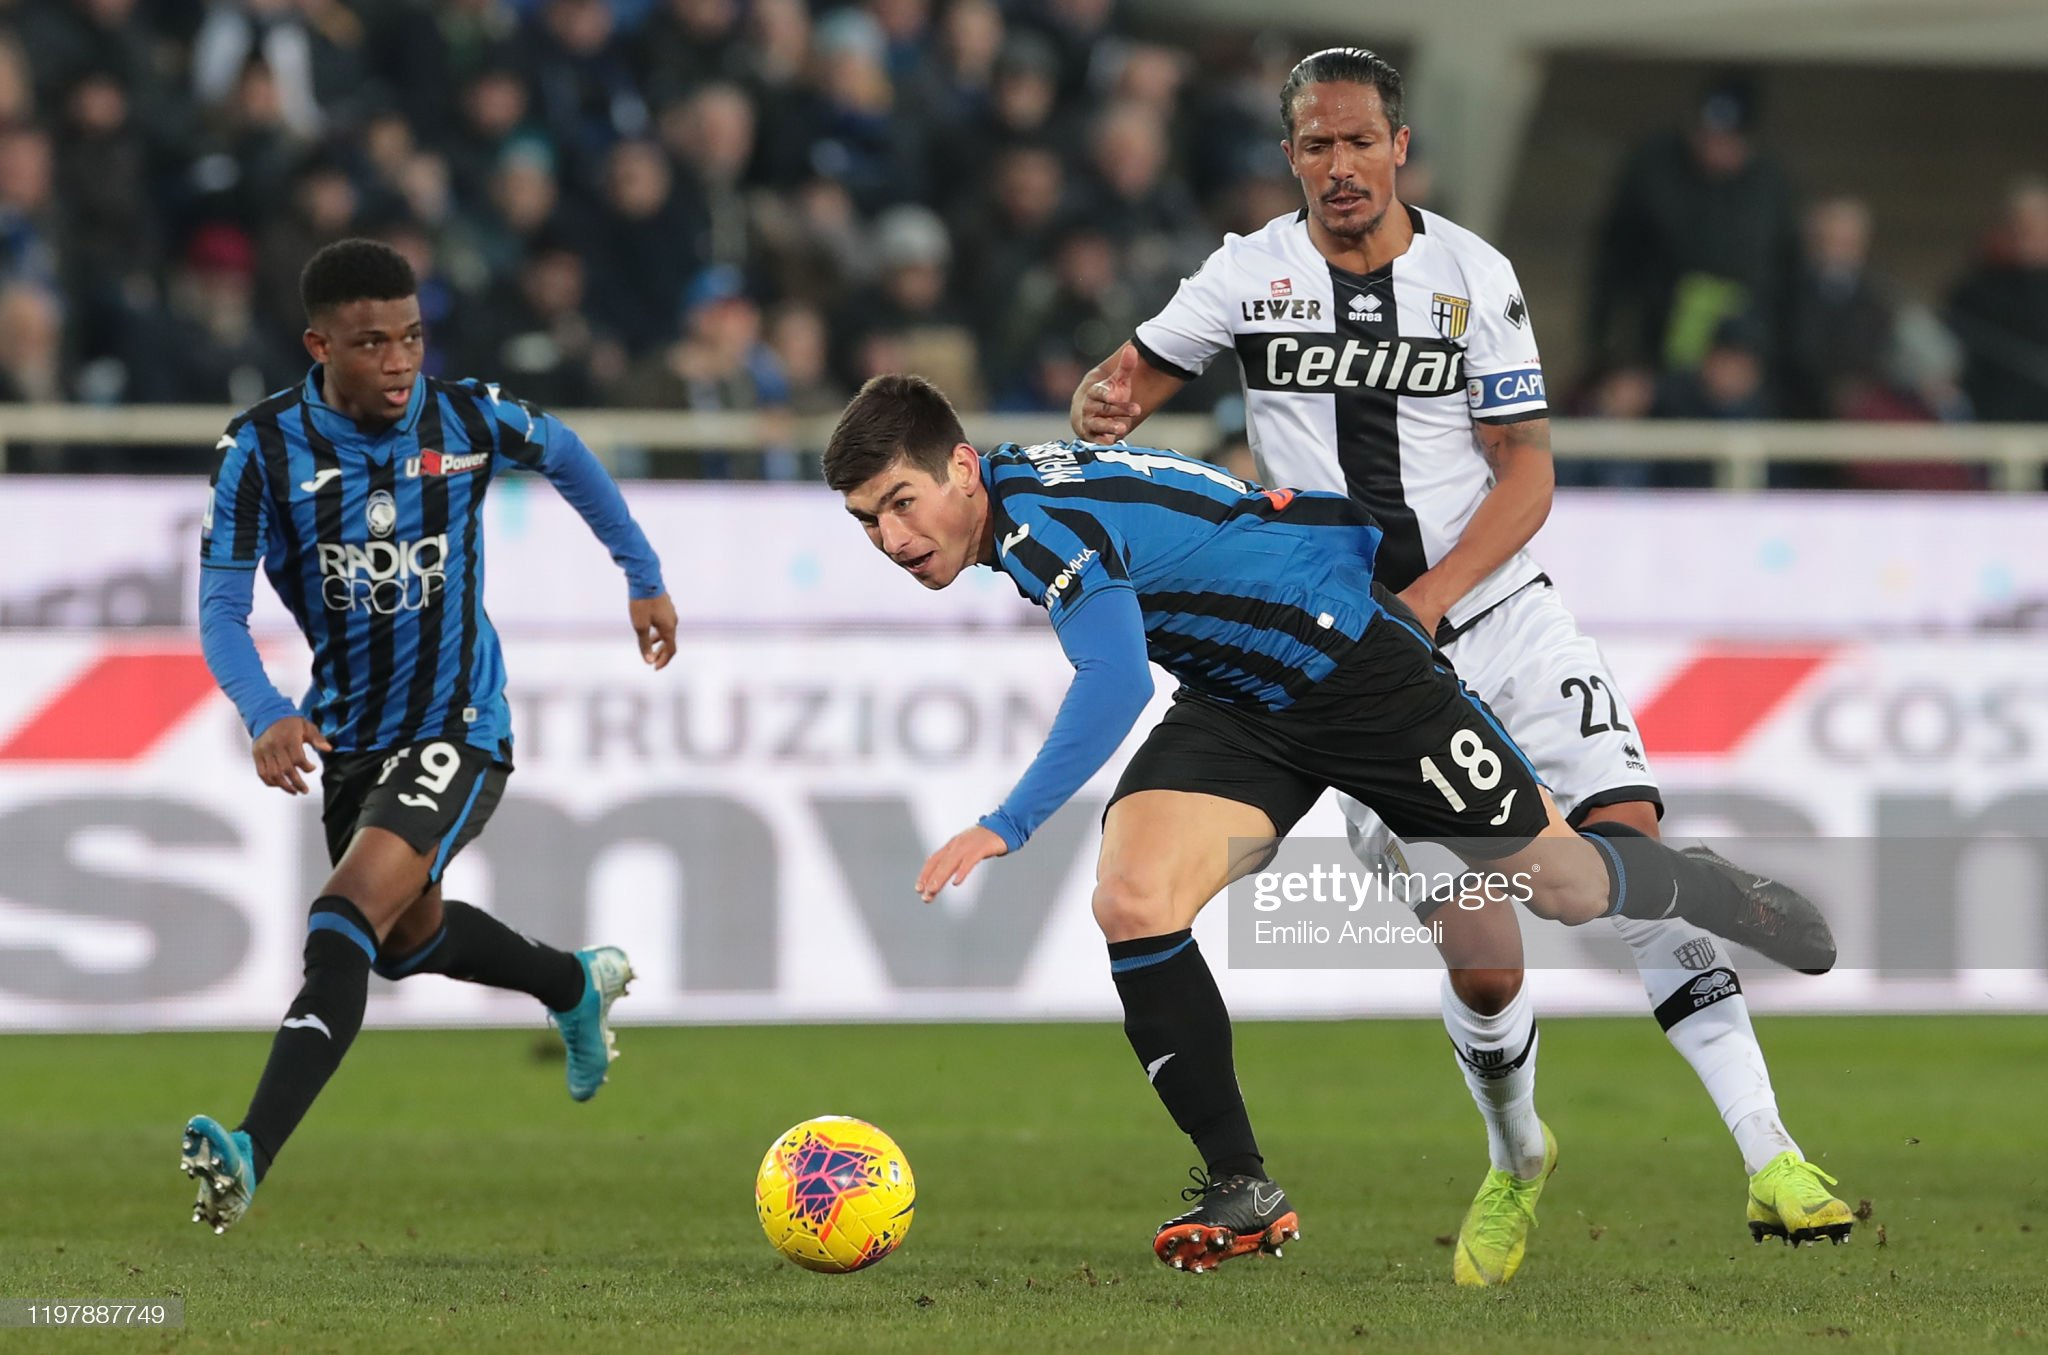 Parma v Atalanta Preview, prediction and odds